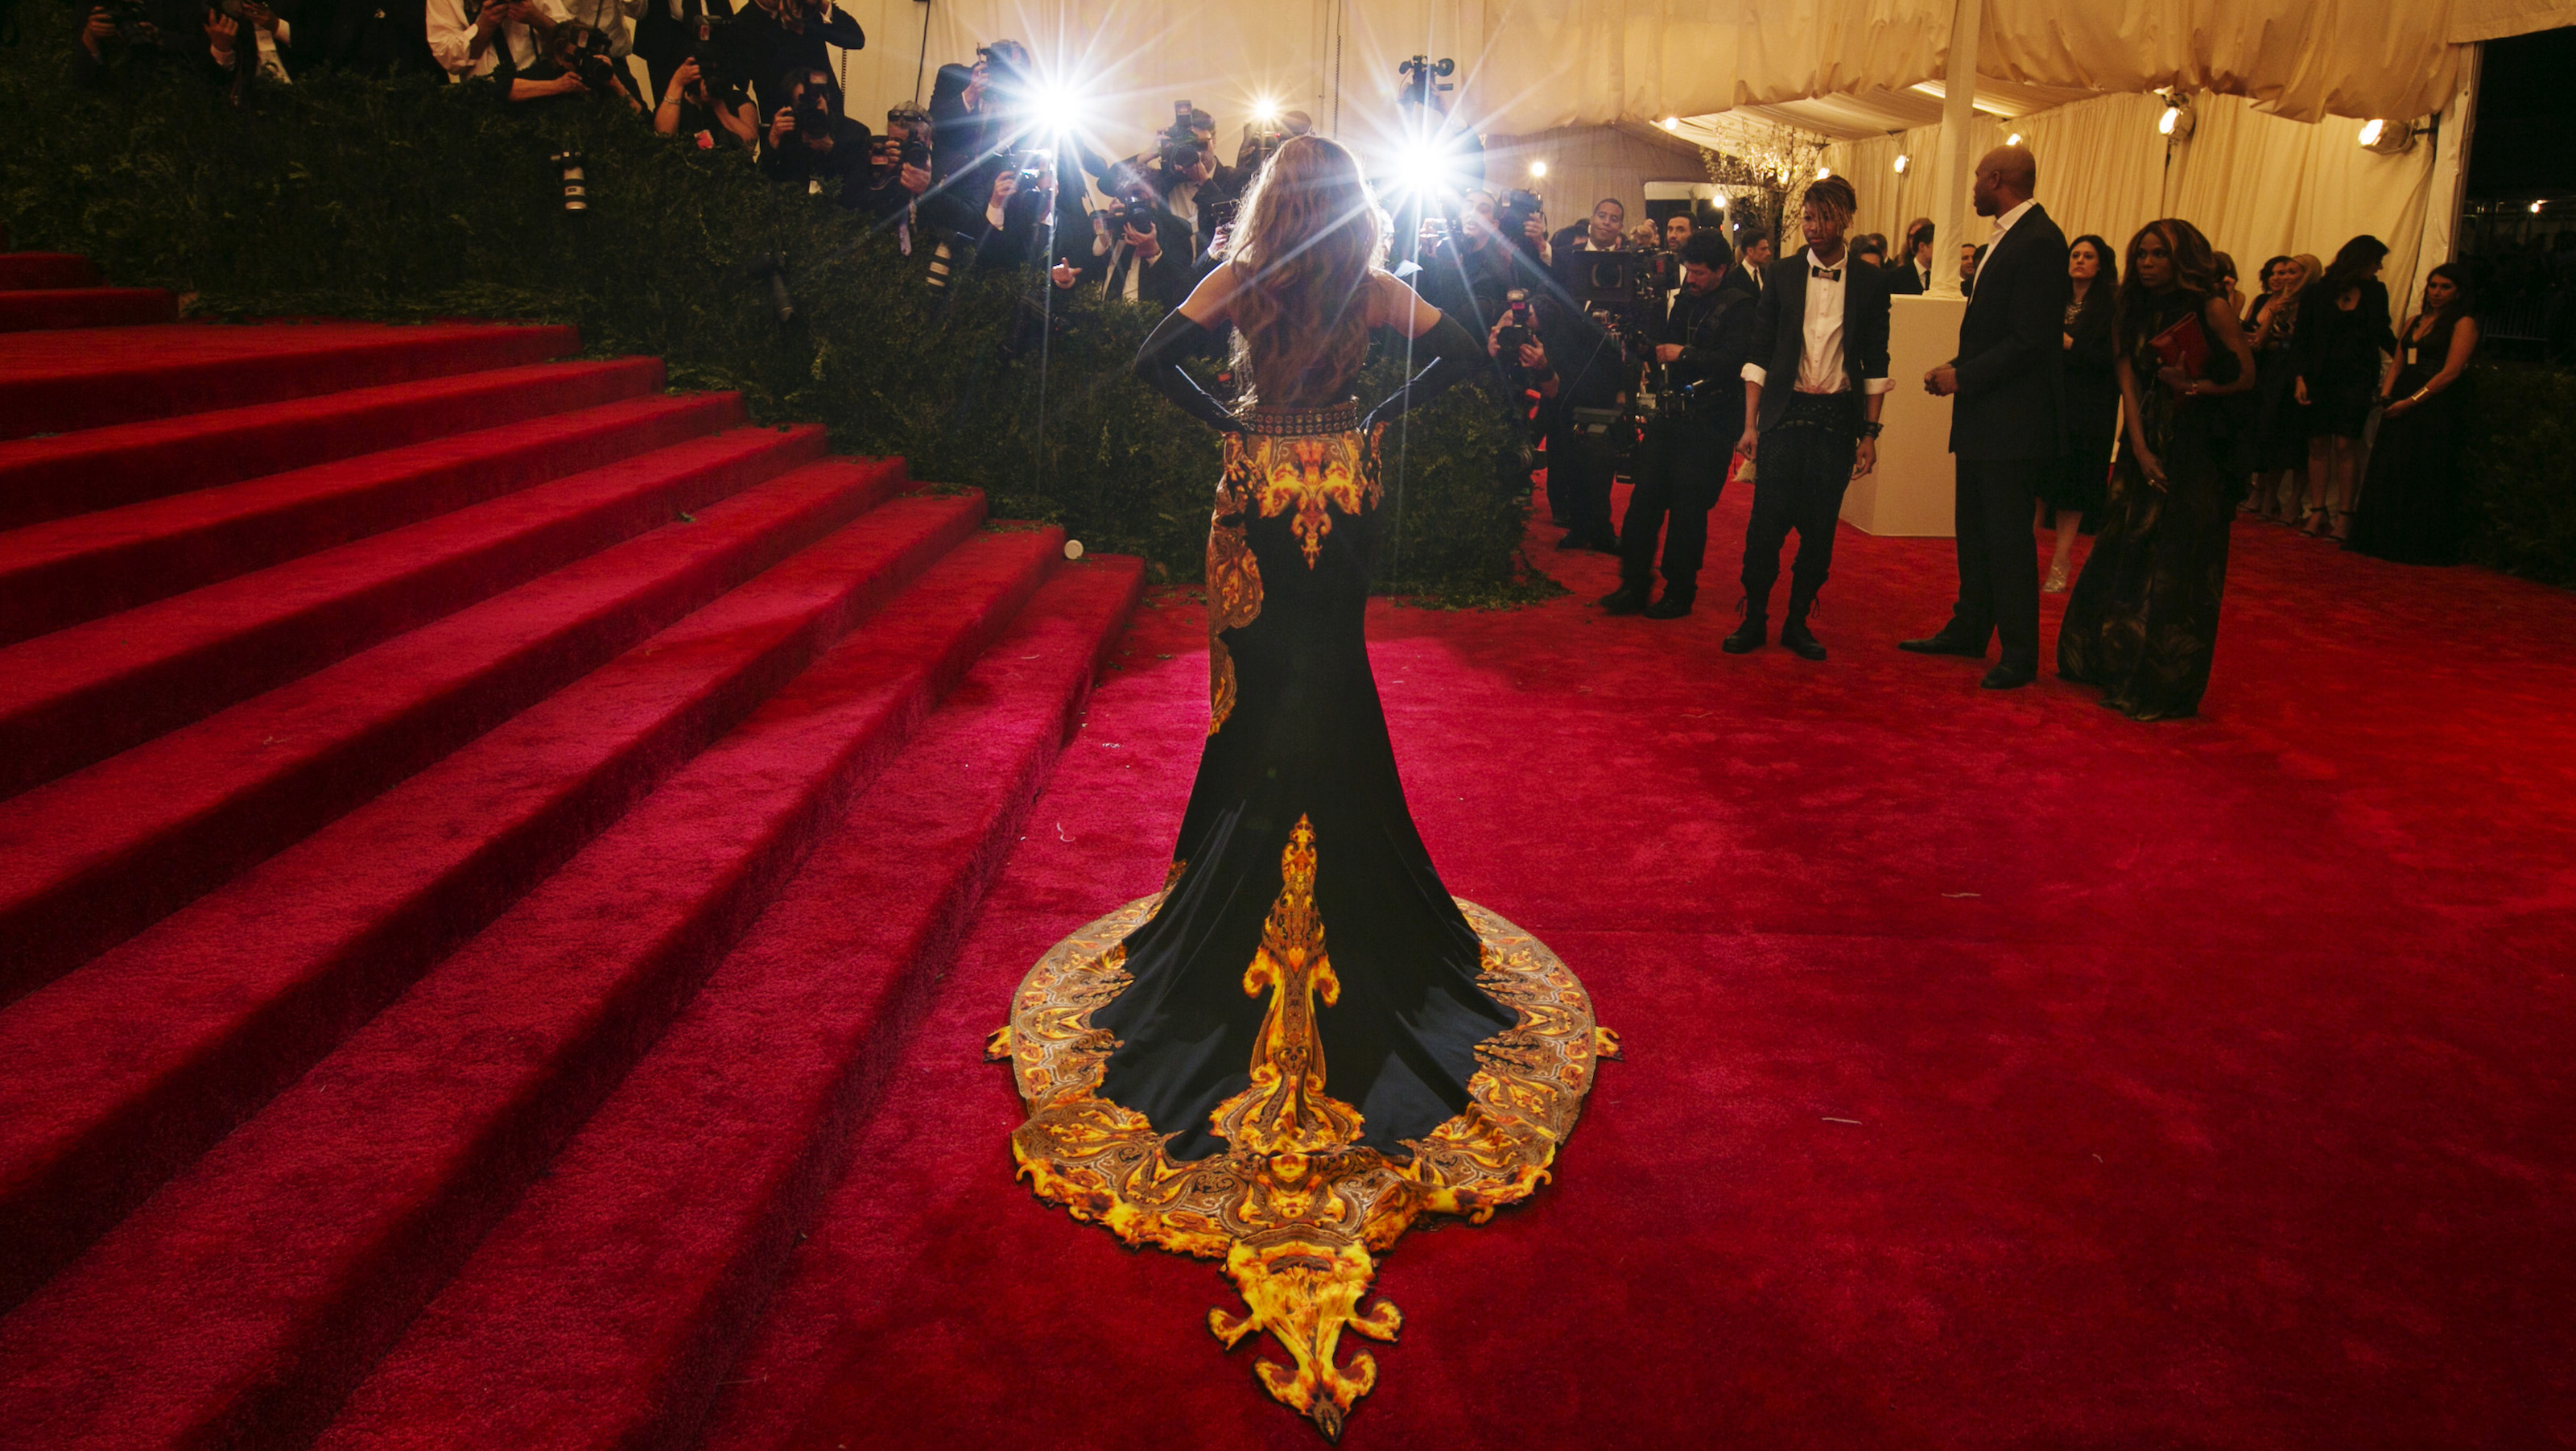 """Singer Beyonce arrives at the Metropolitan Museum of Art Costume Institute Benefit celebrating the opening of """"PUNK: Chaos to Couture"""" in New York, May 6, 2013. REUTERS/Lucas Jackson (UNITED STATES - Tags: ENTERTAINMENT FASHION TPX IMAGES OF THE DAY) - RTXZD0U"""